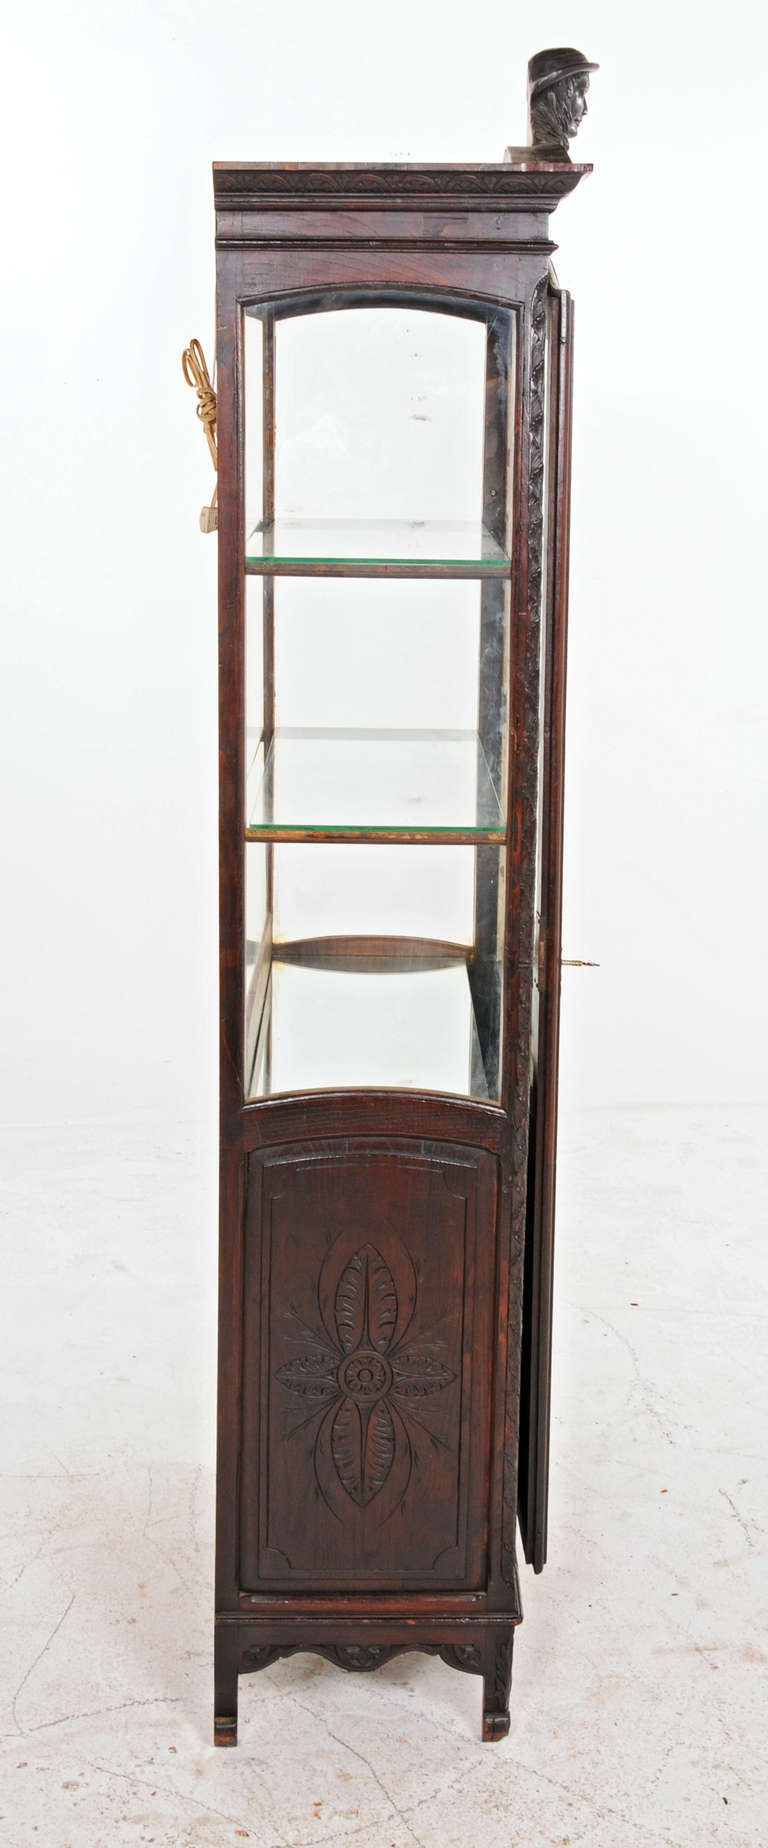 Decorative french oak vitrine cabinet circa 1890 at 1stdibs for 1890 kitchen cabinets